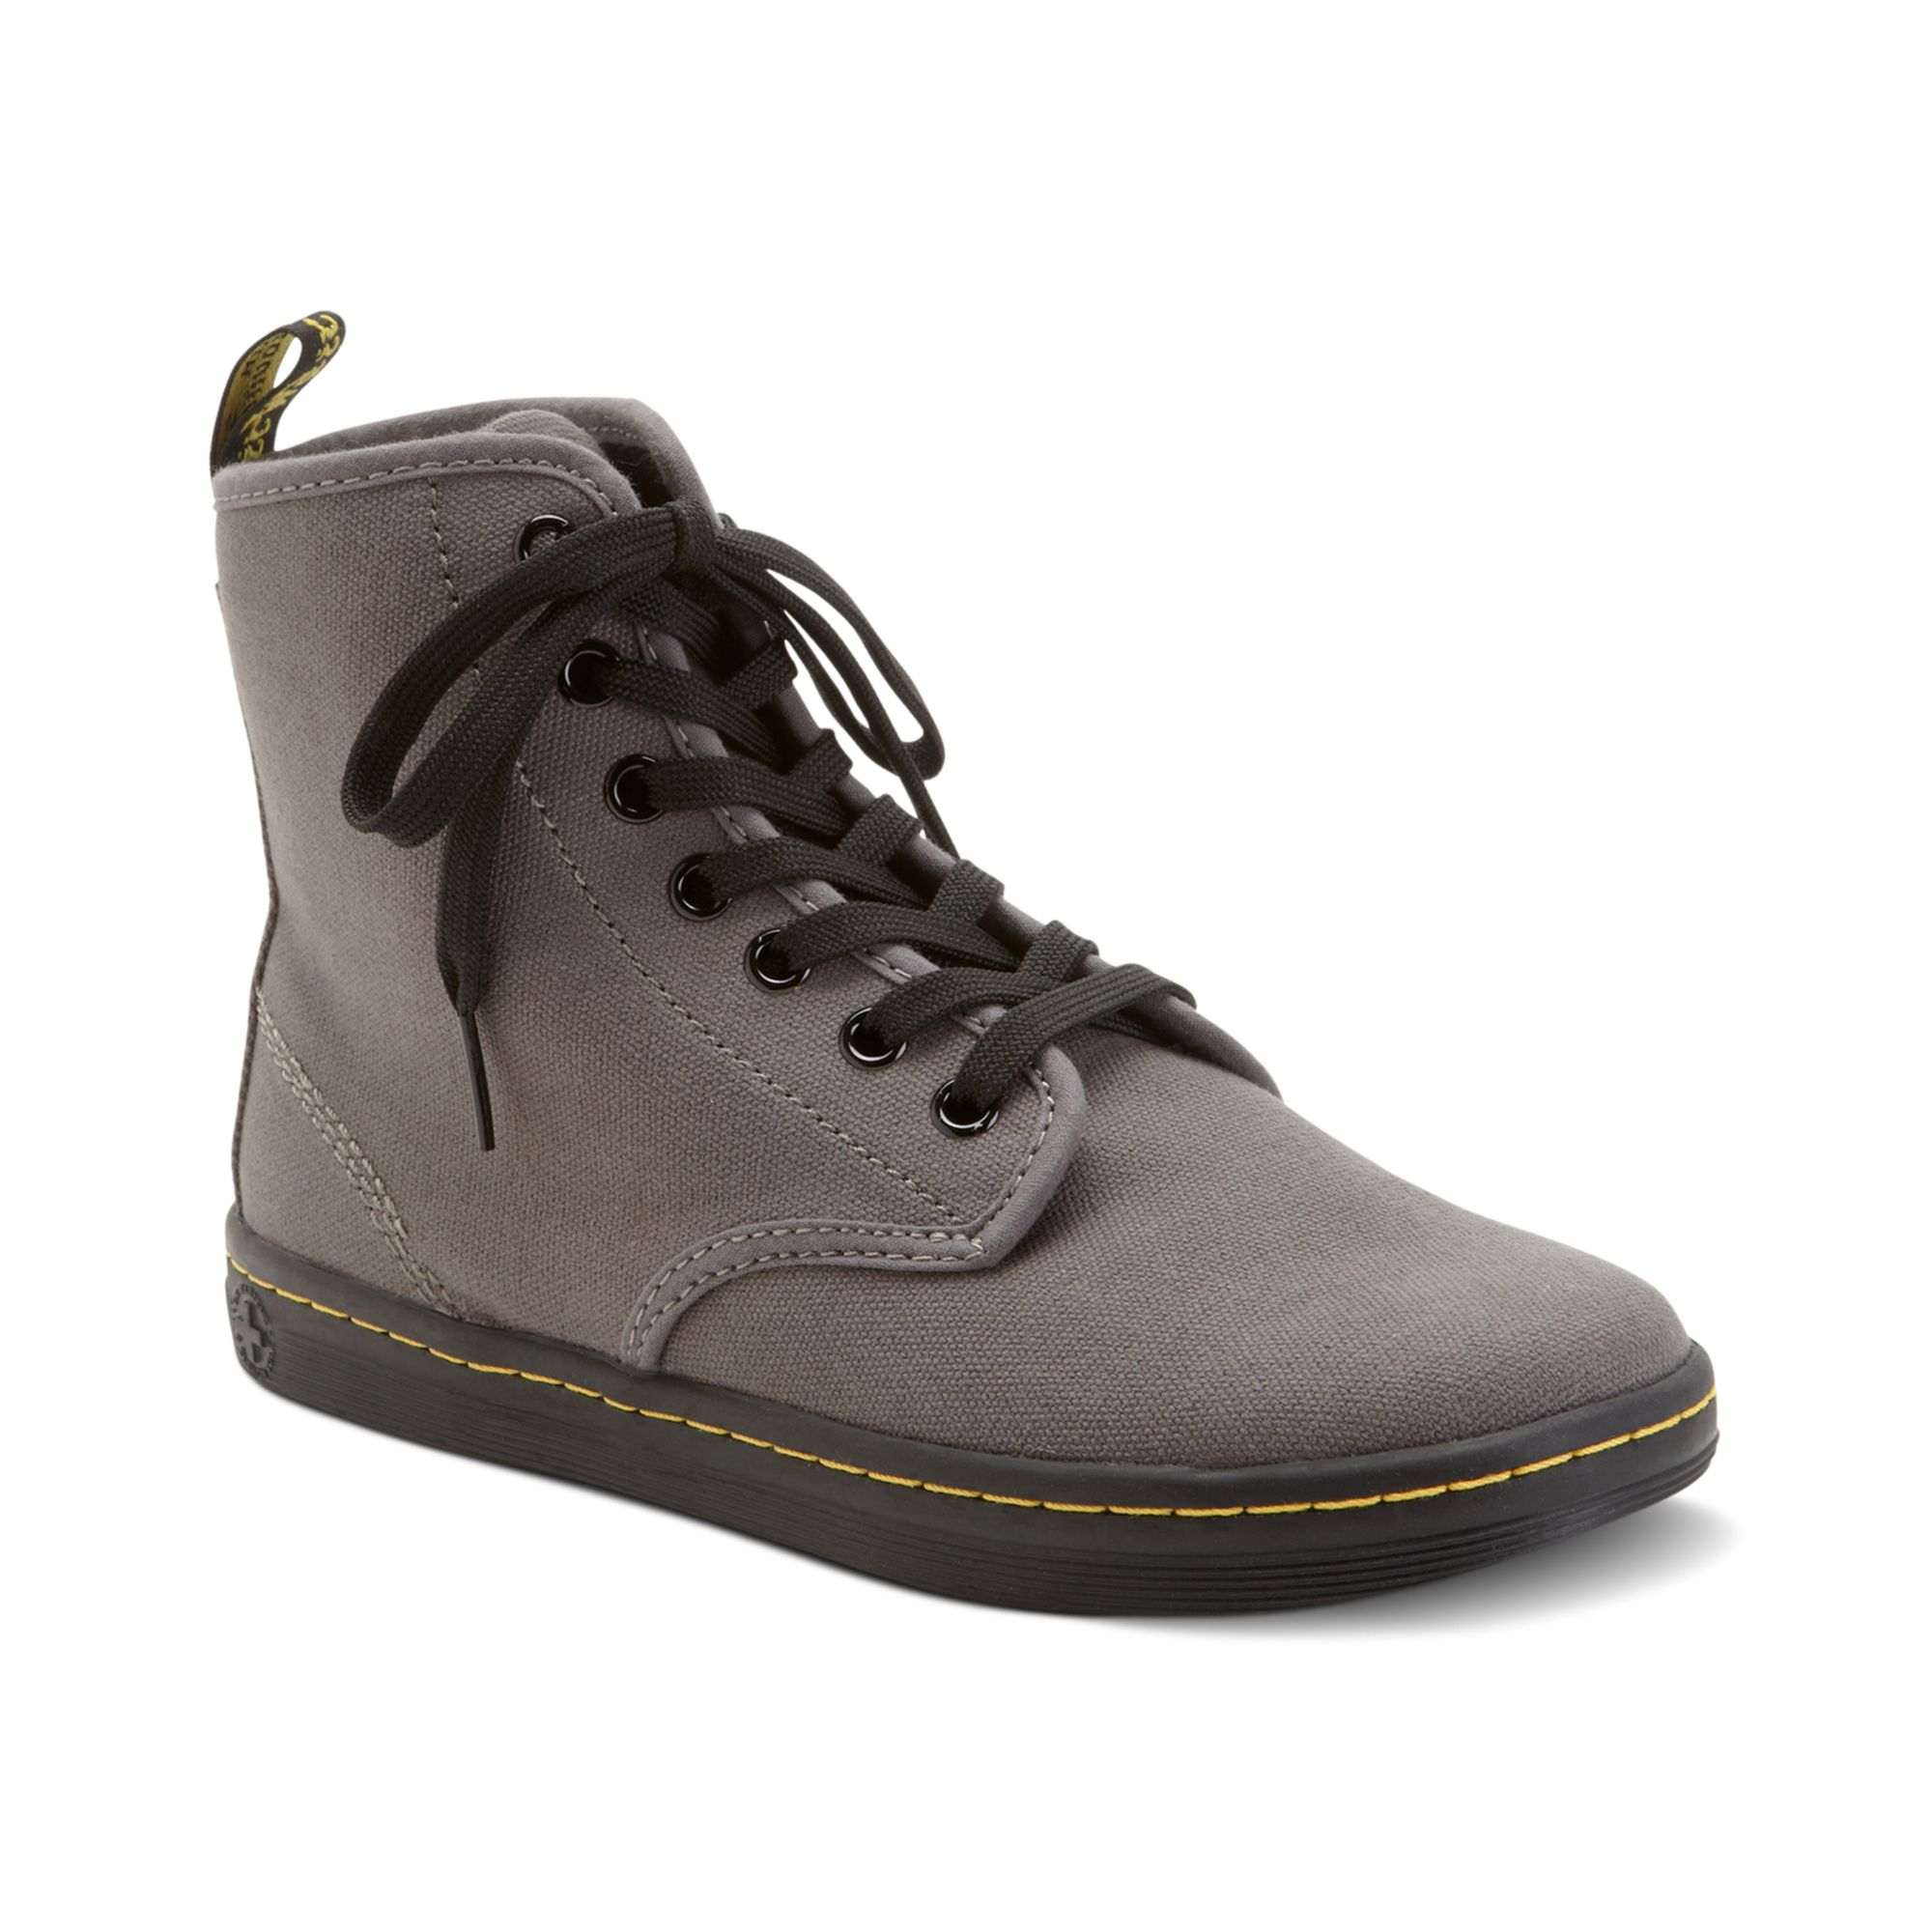 Dr Martens Shoreditch High Top Sneakers In Brown Lyst